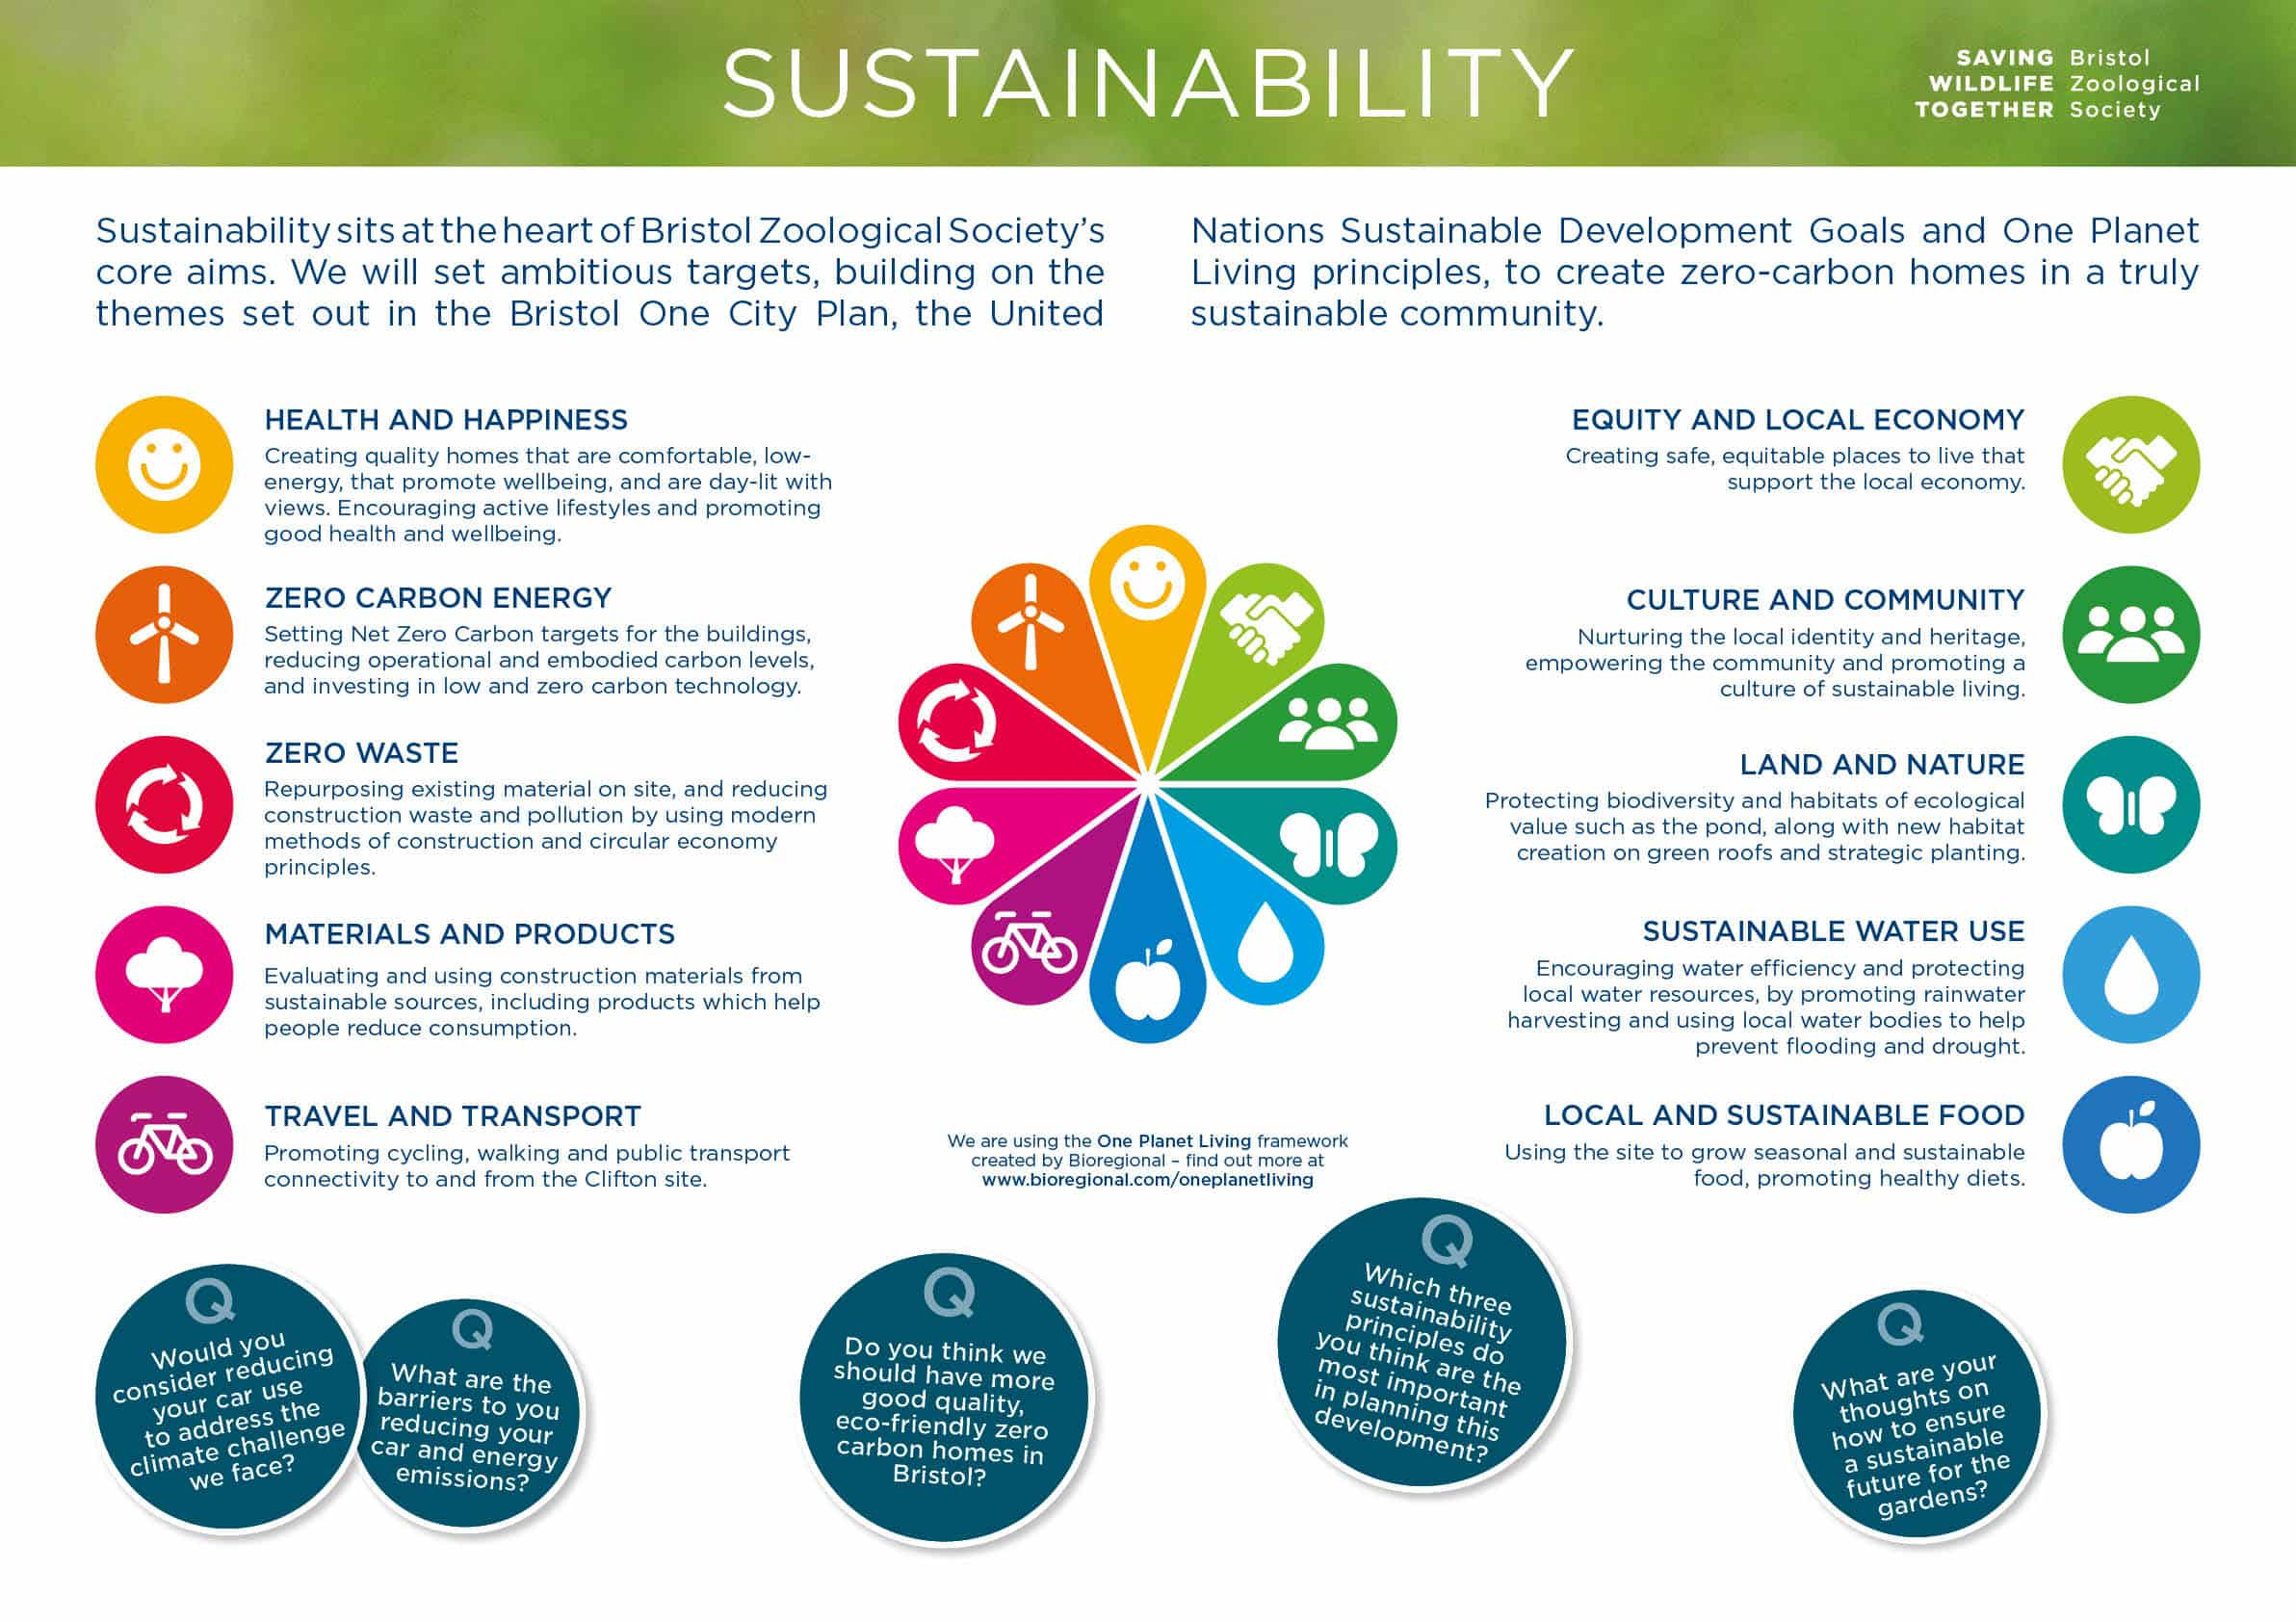 Moodboard detailing sustainability targets and principles